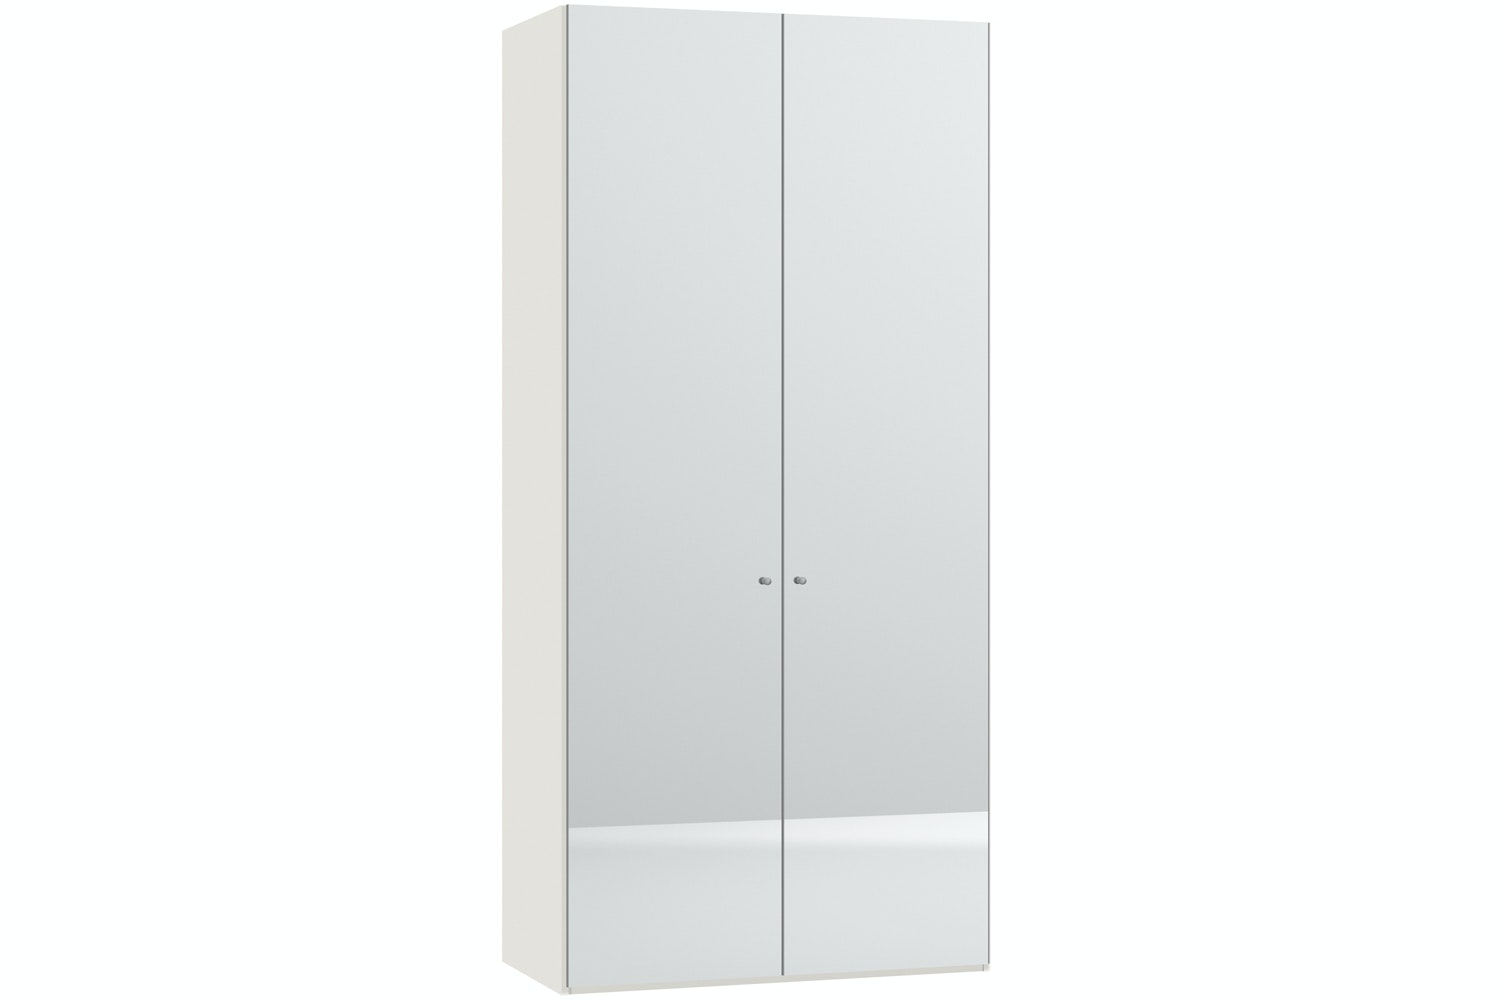 Mila Hinged 2 Door Wardrobe 102Cm | Mirror Body White